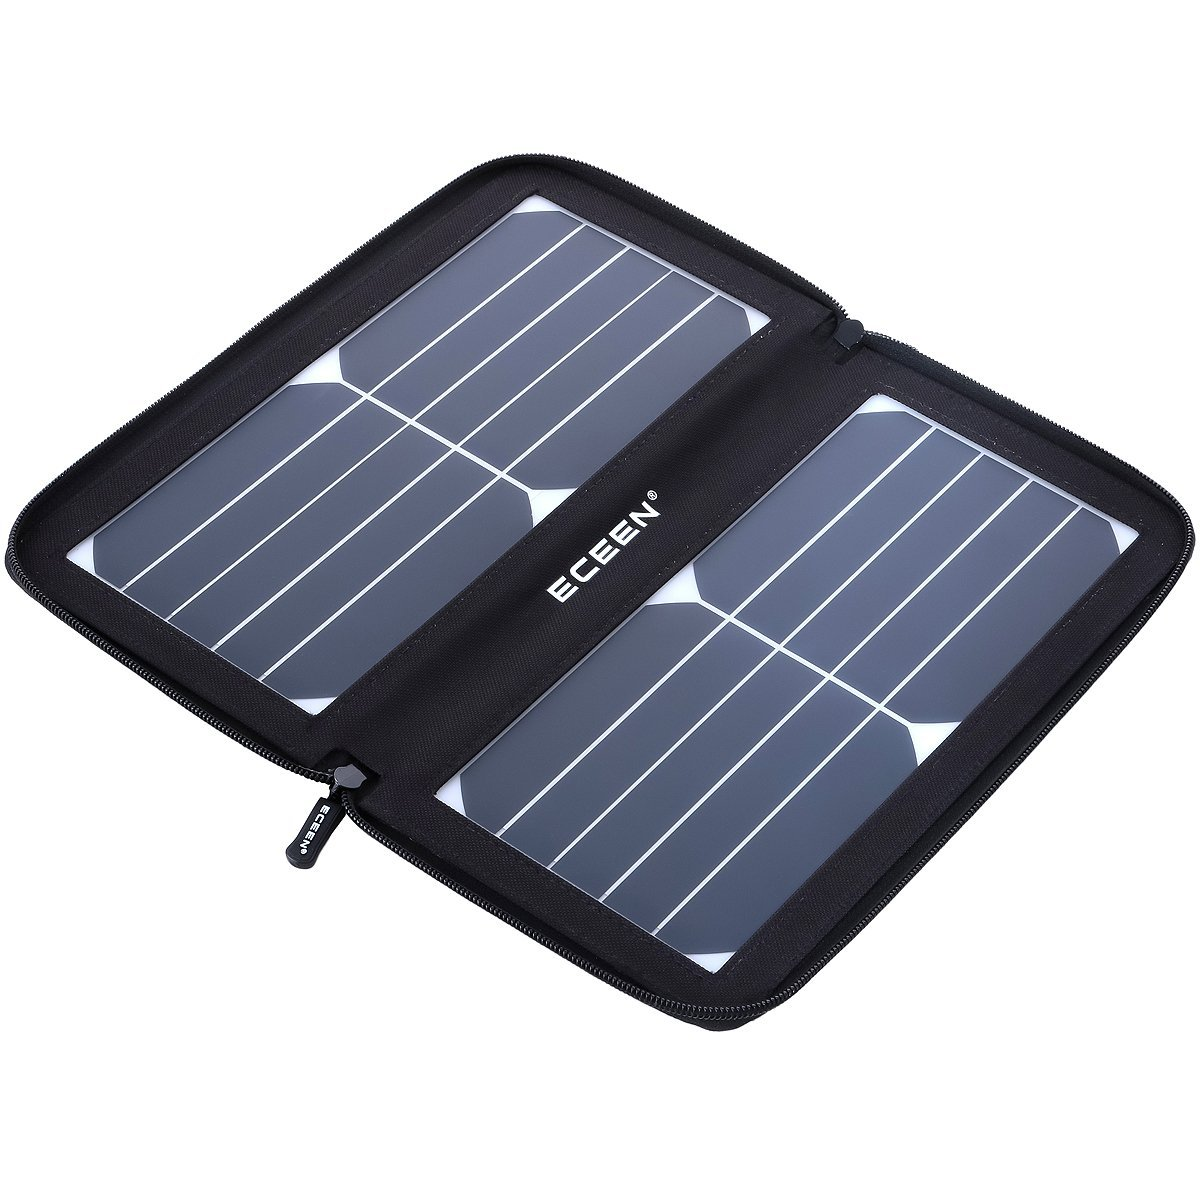 ECEEN-Solar-Charger-Panel-with-10W-High-Efficiency-Sunpower-Cells